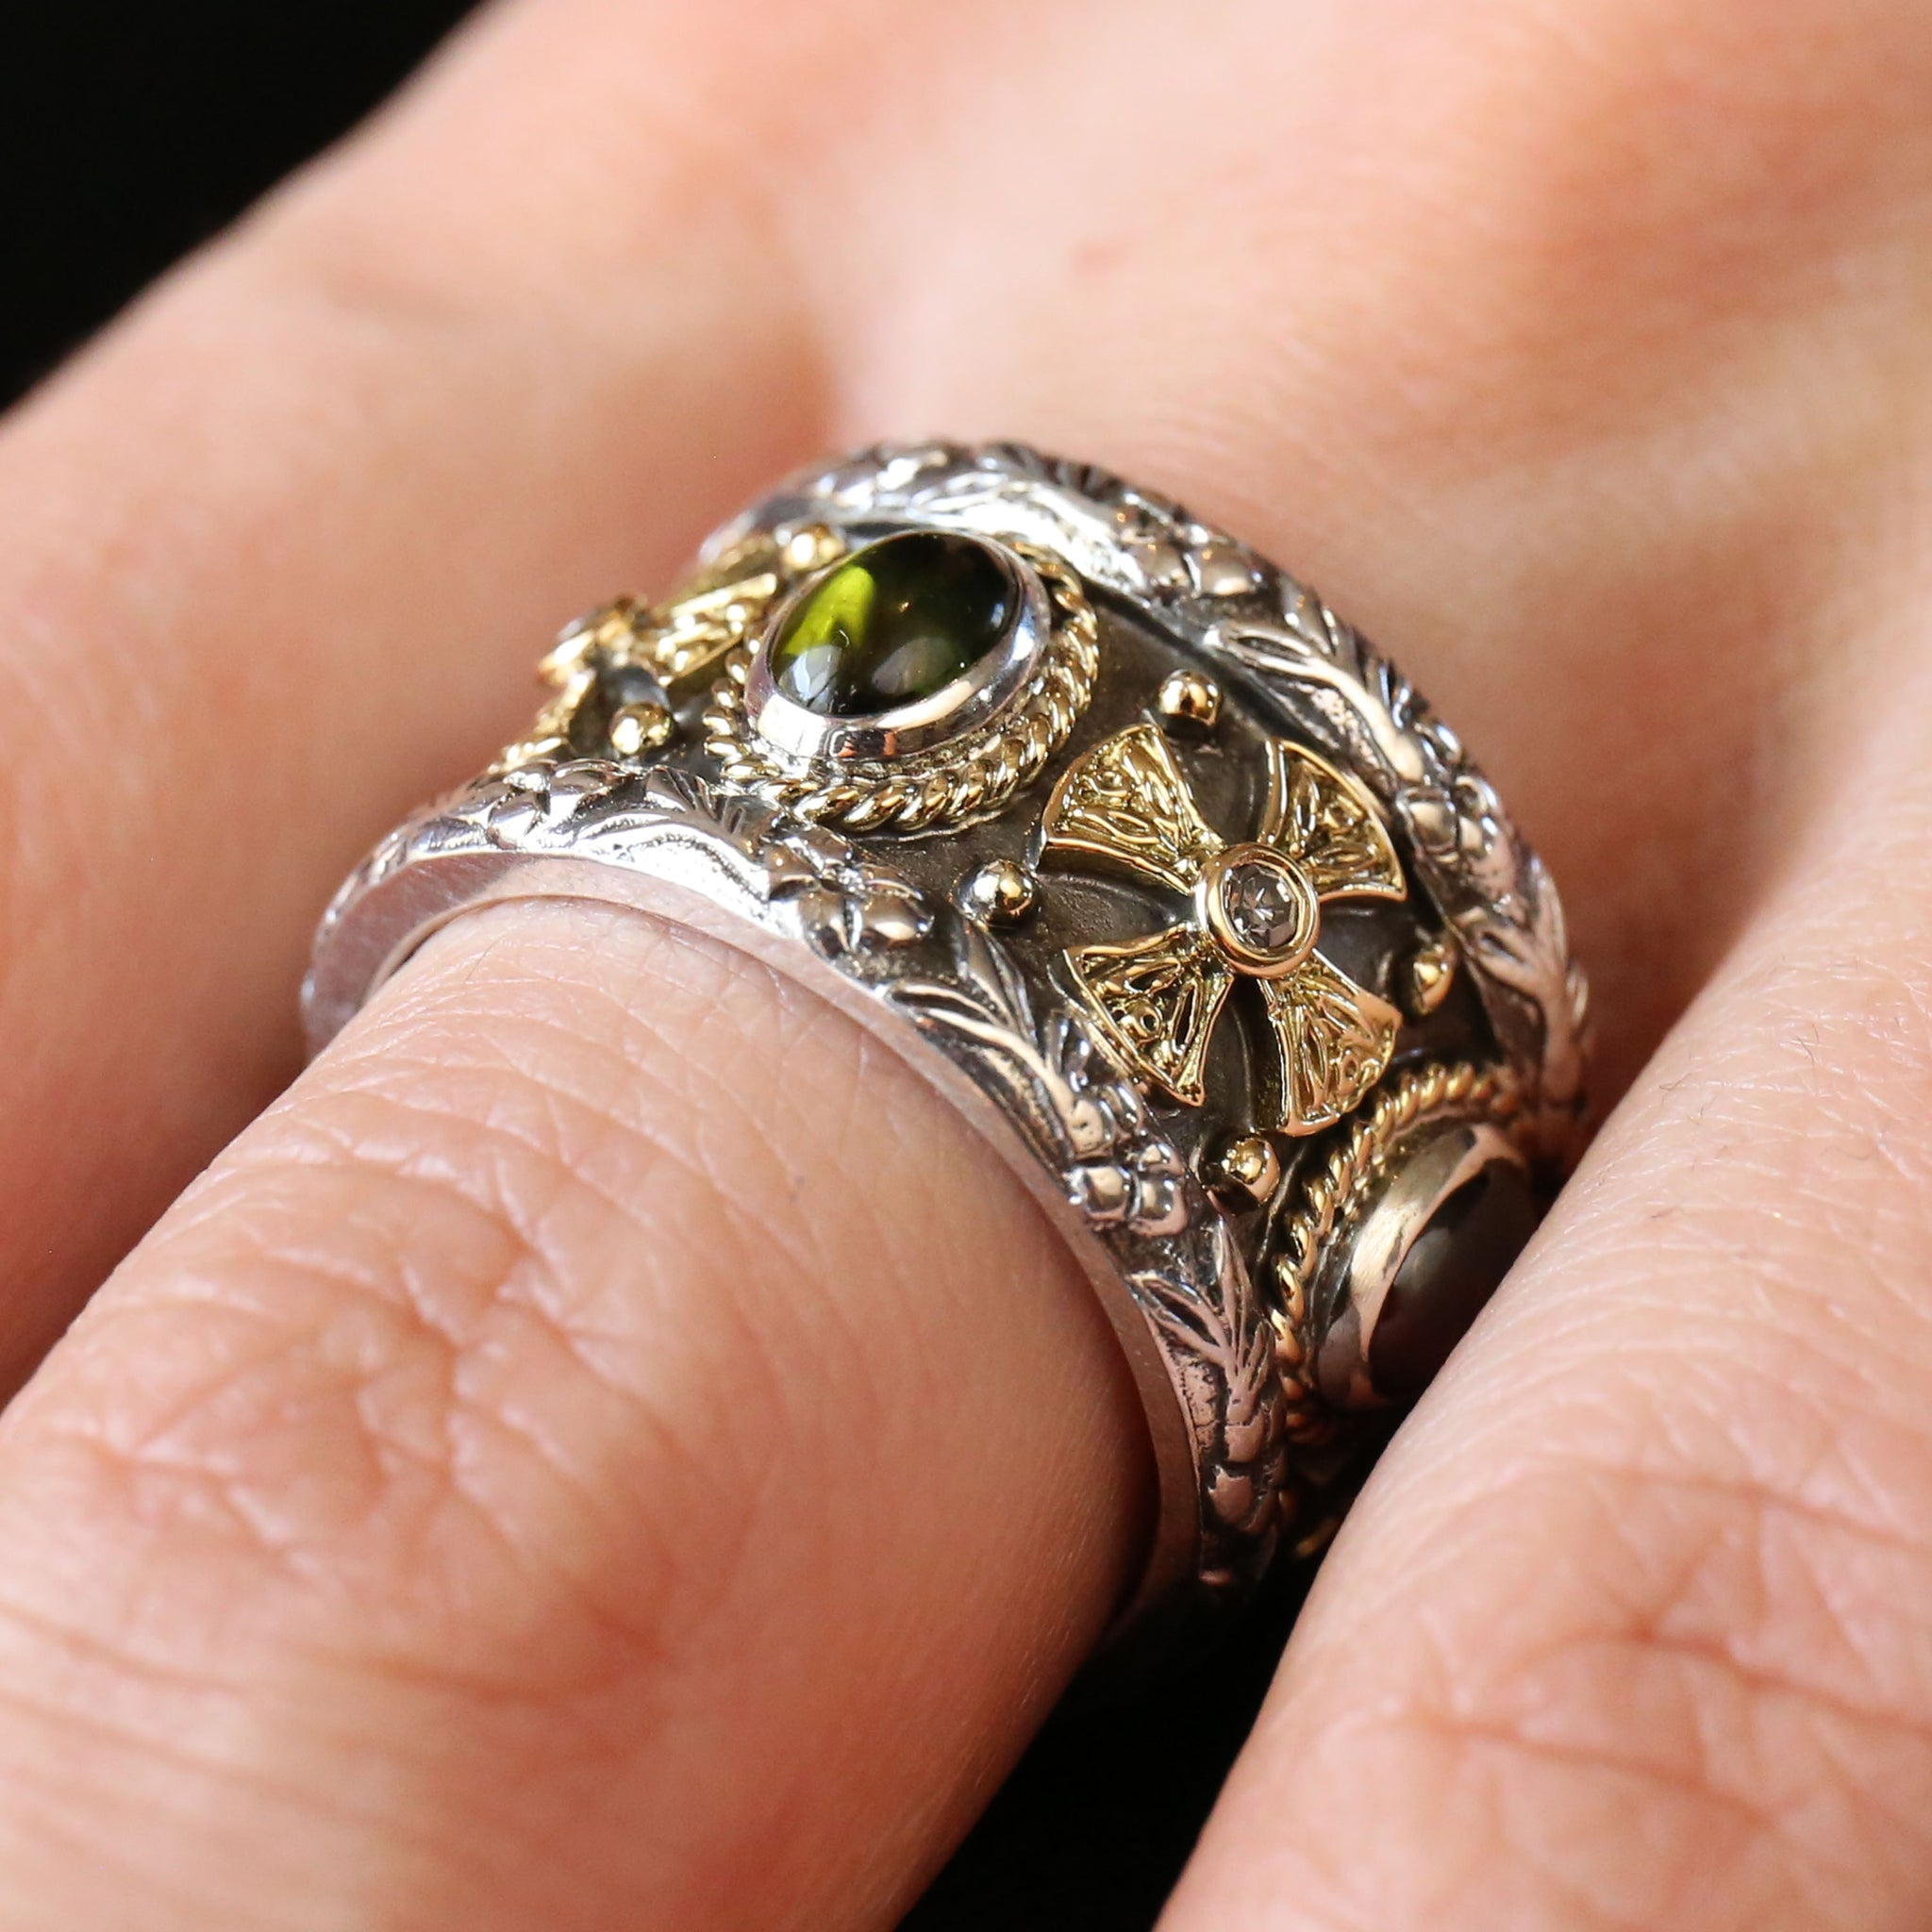 Maltese Cross Band Ring